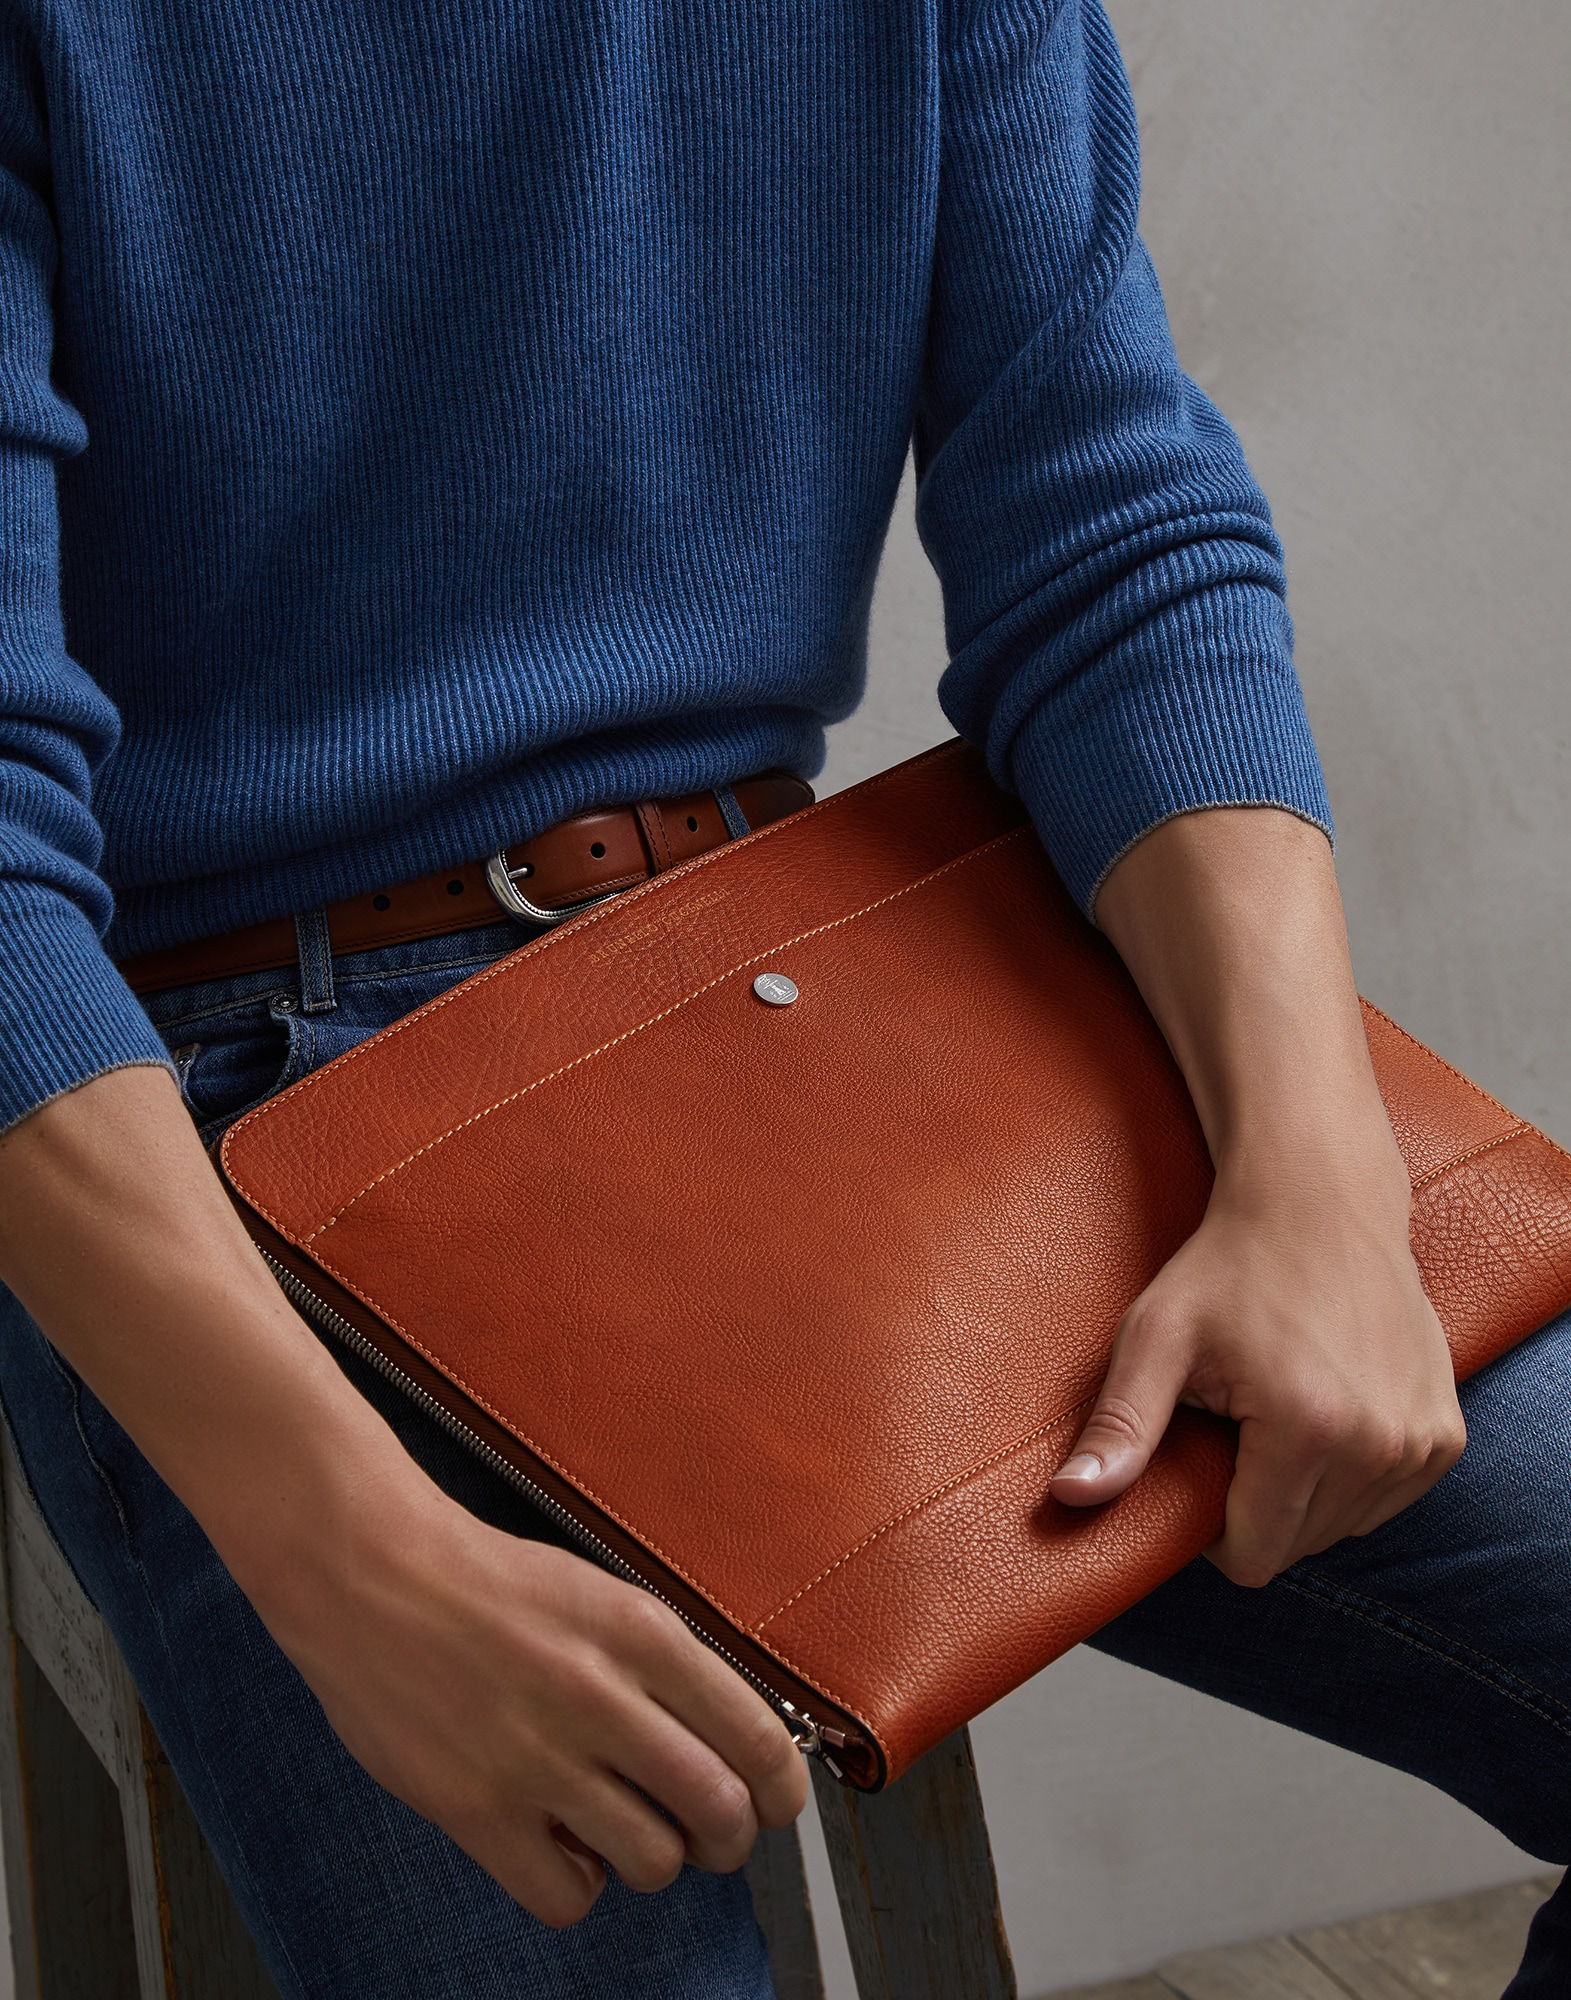 Document Holder Rum Man 3 - Brunello Cucinelli